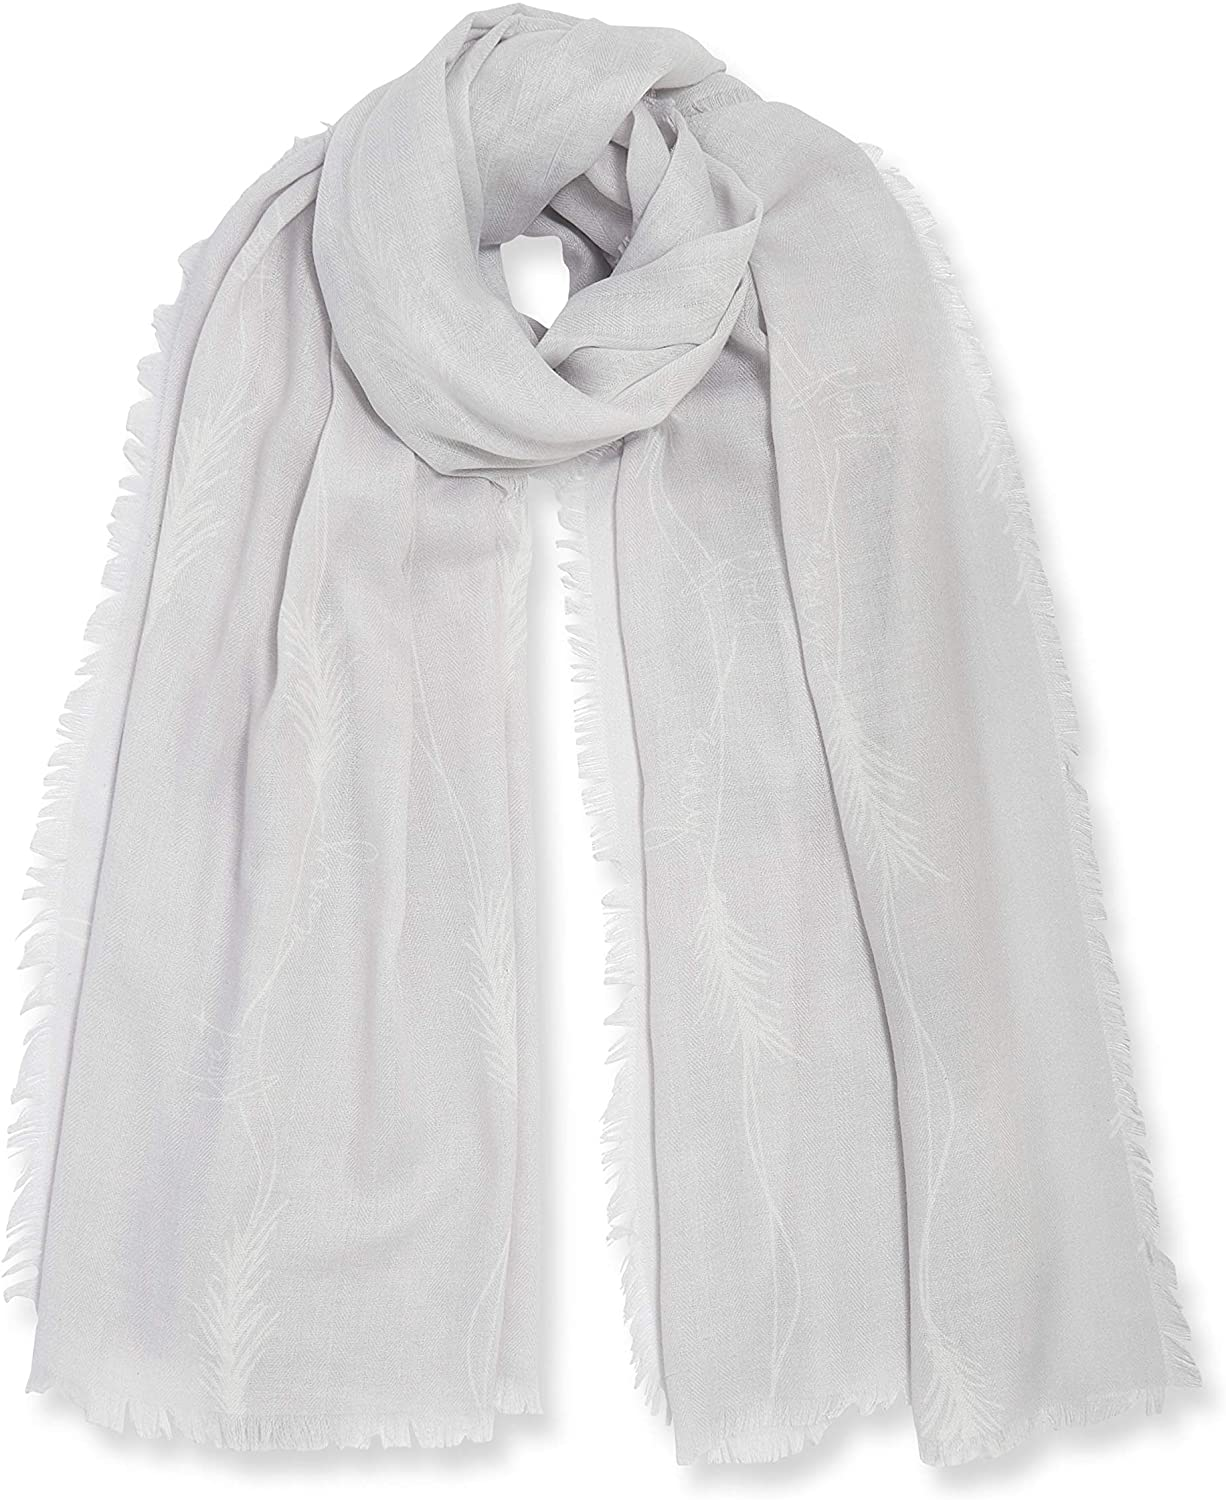 Katie Loxton Float Away Womens One Size Fits Most Fashion Sentiment Scarf in Pale Grey